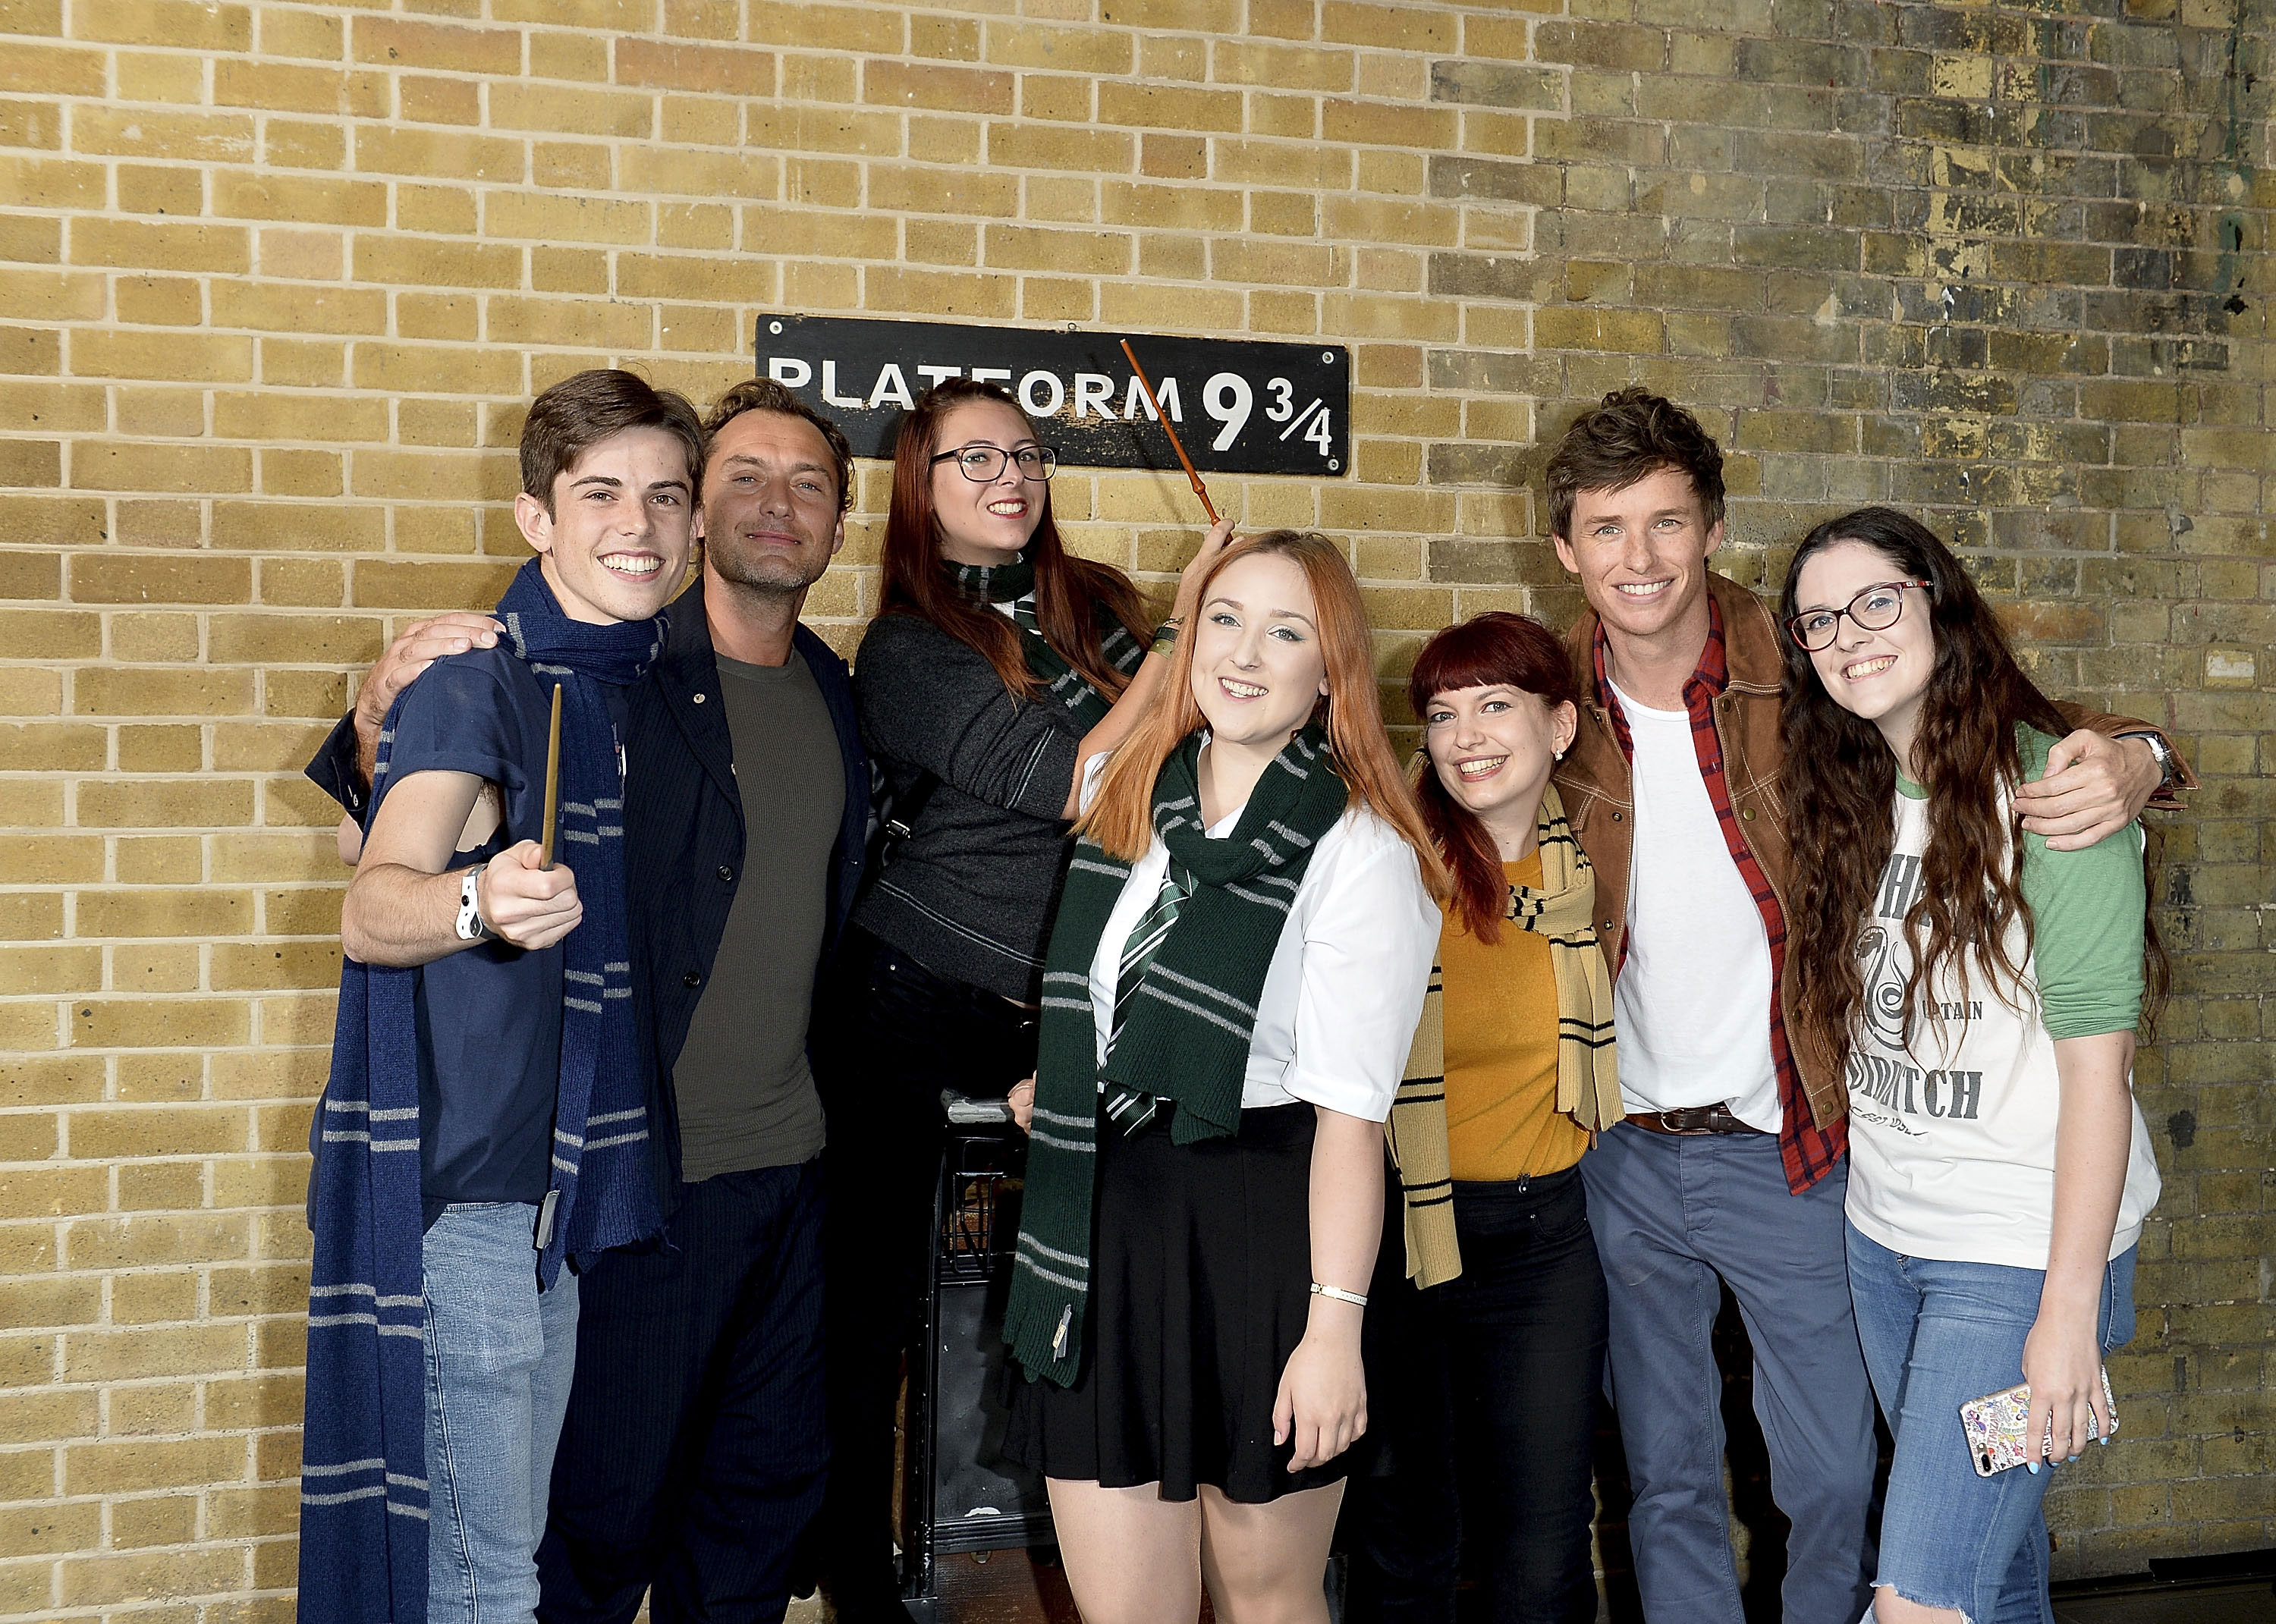 A group of fans from all the Houses poses with Law and Redmayne at Platform 9 3/4.